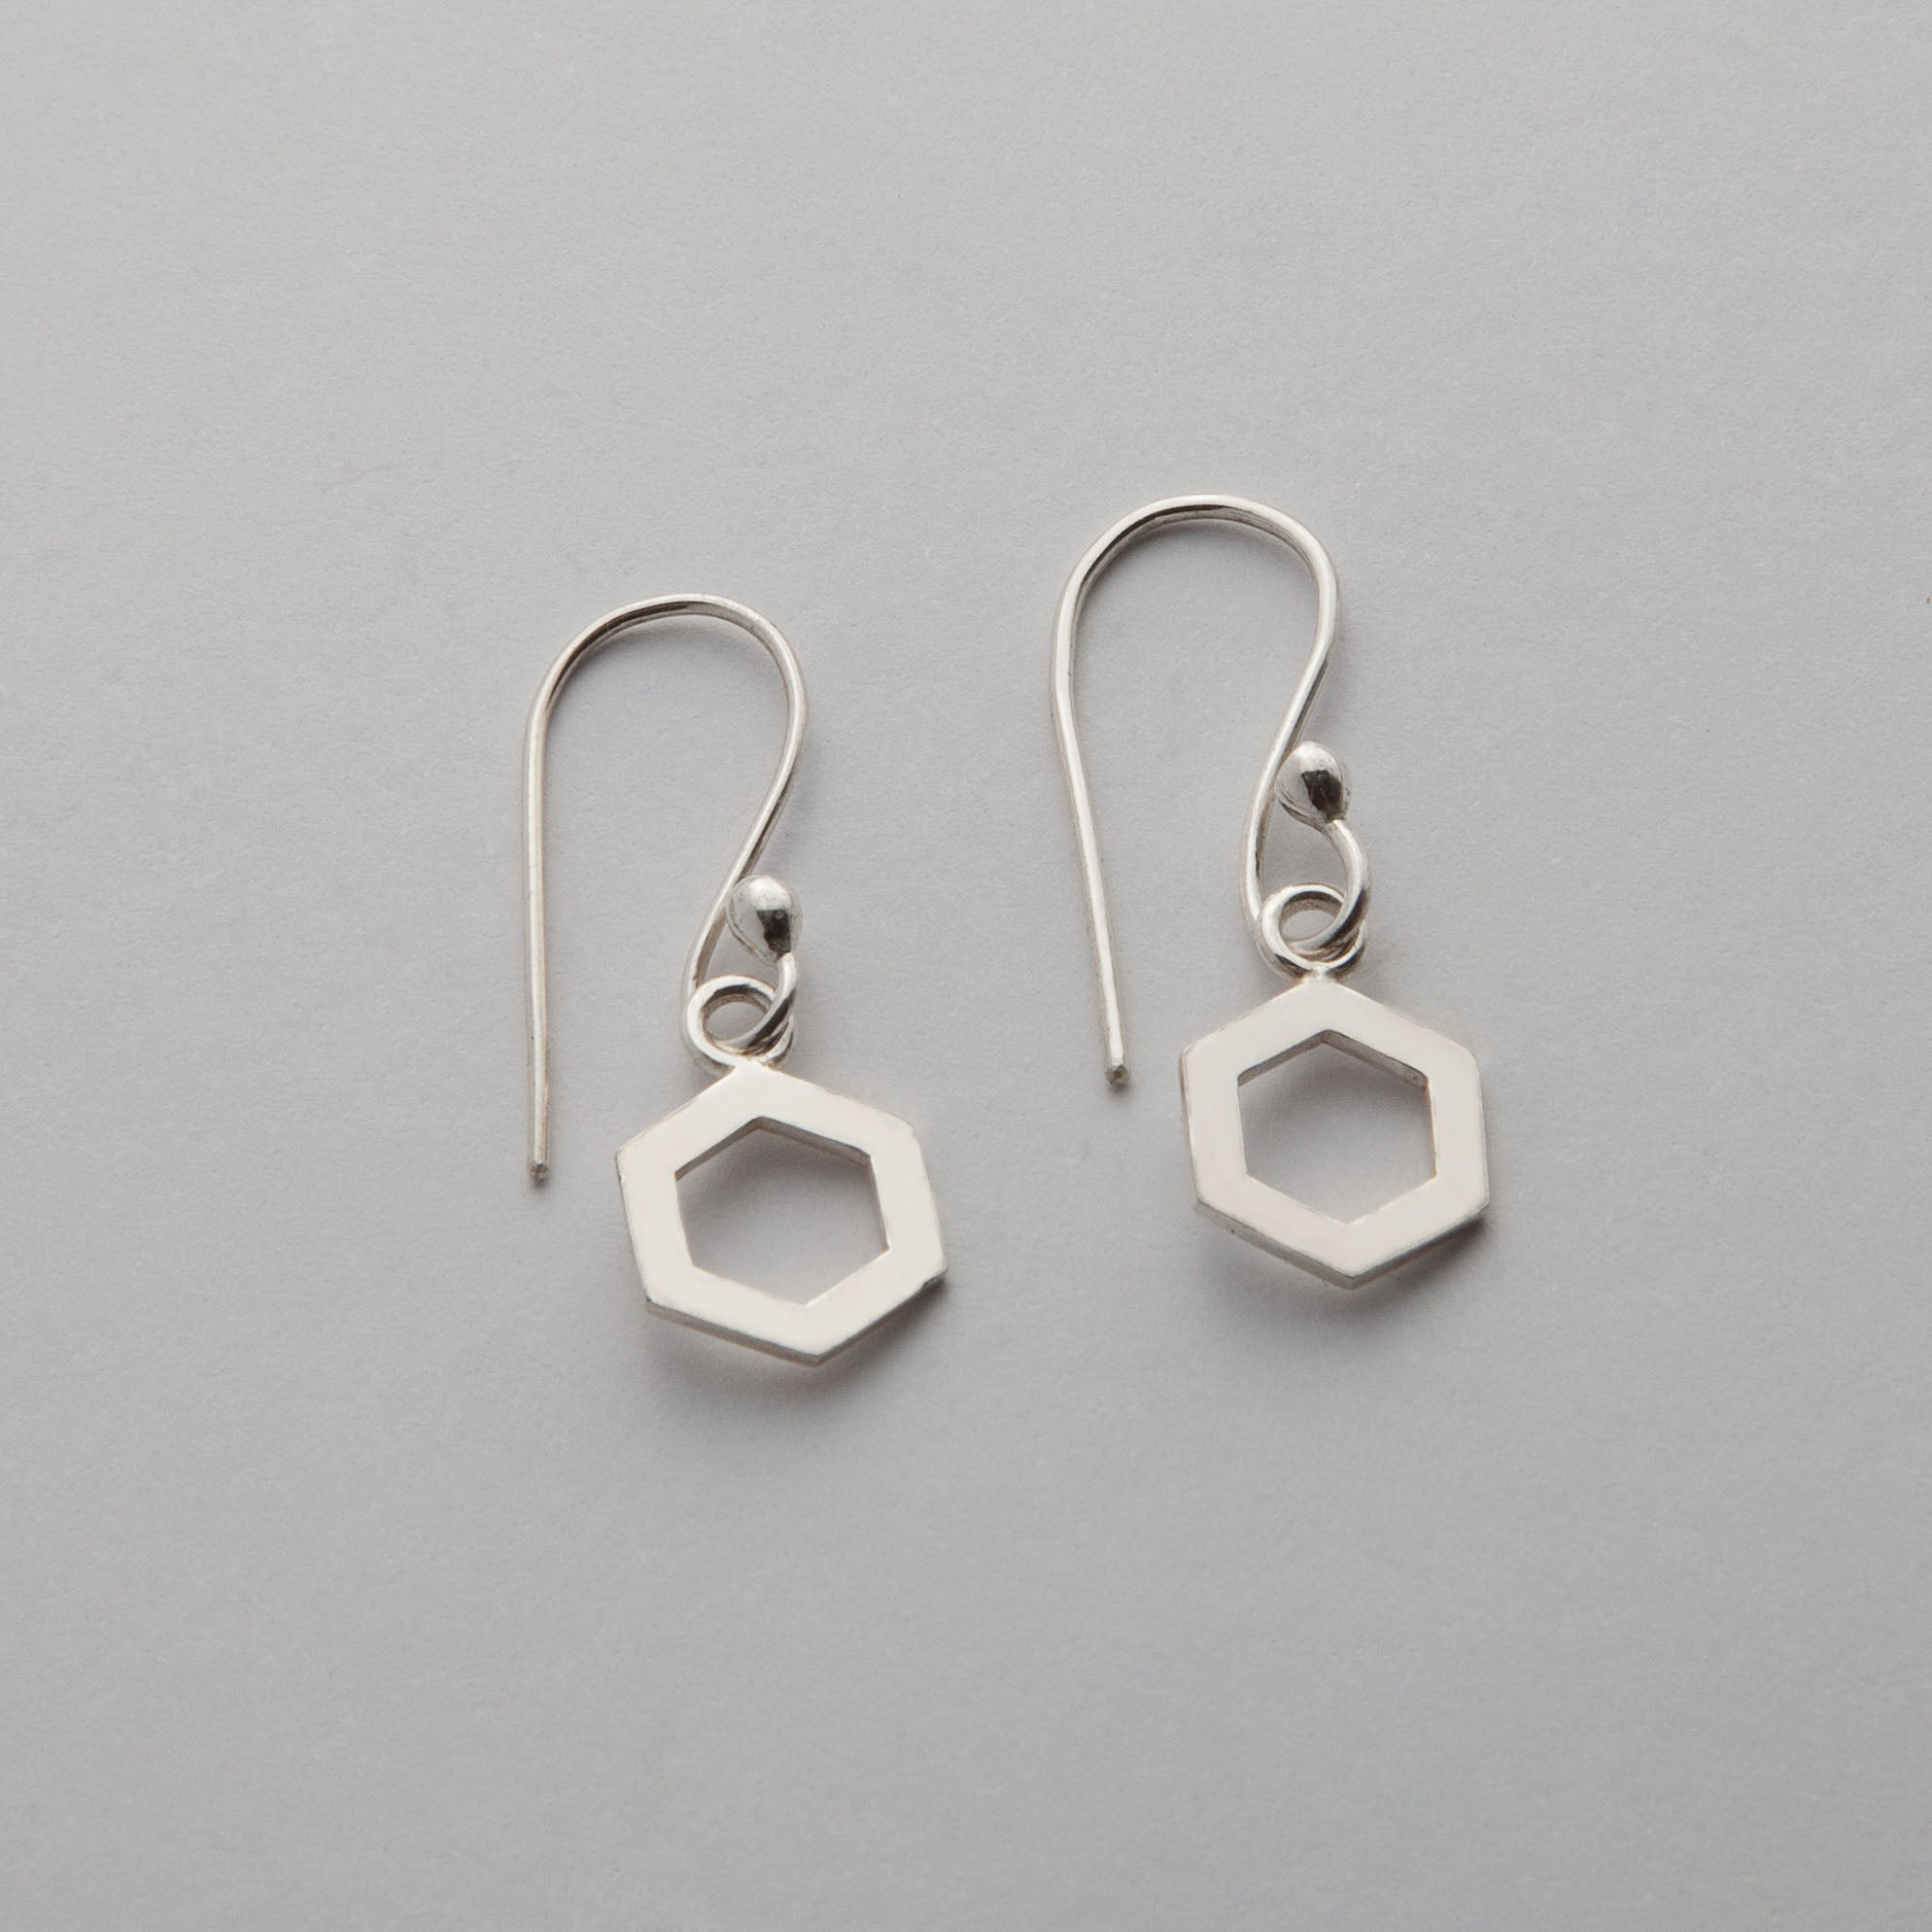 Earrings, STH-E03